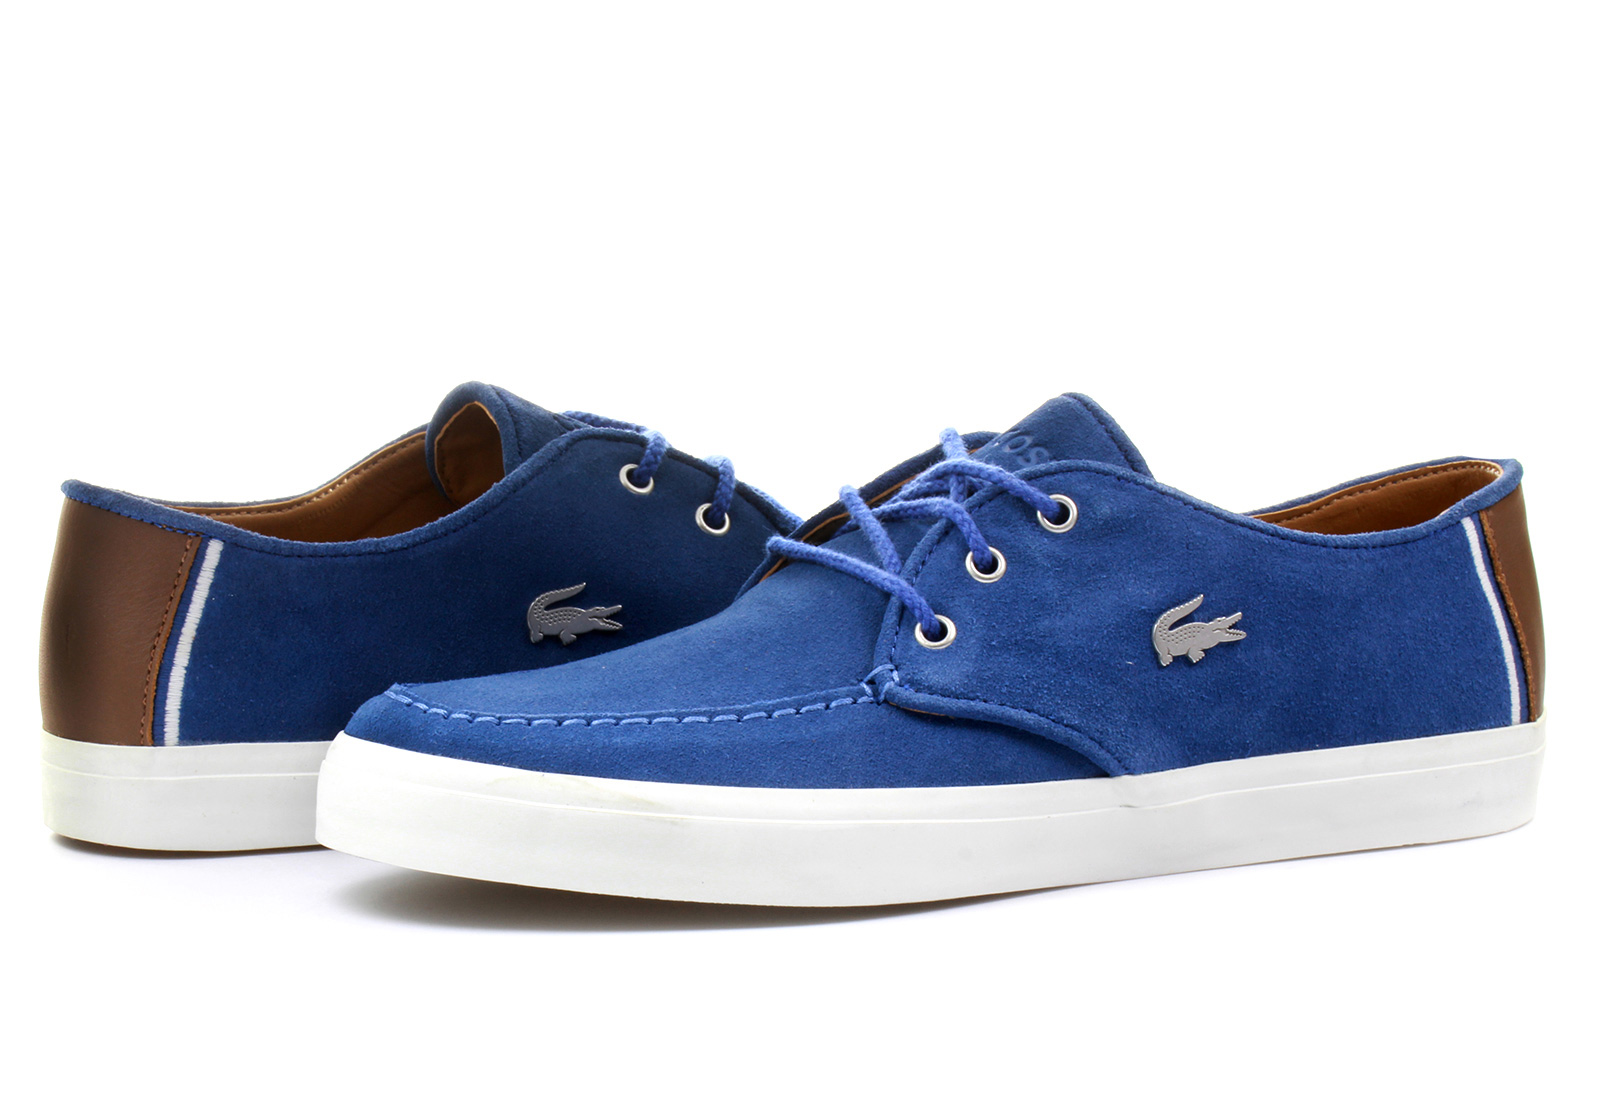 Lacoste Blue Boat Shoe